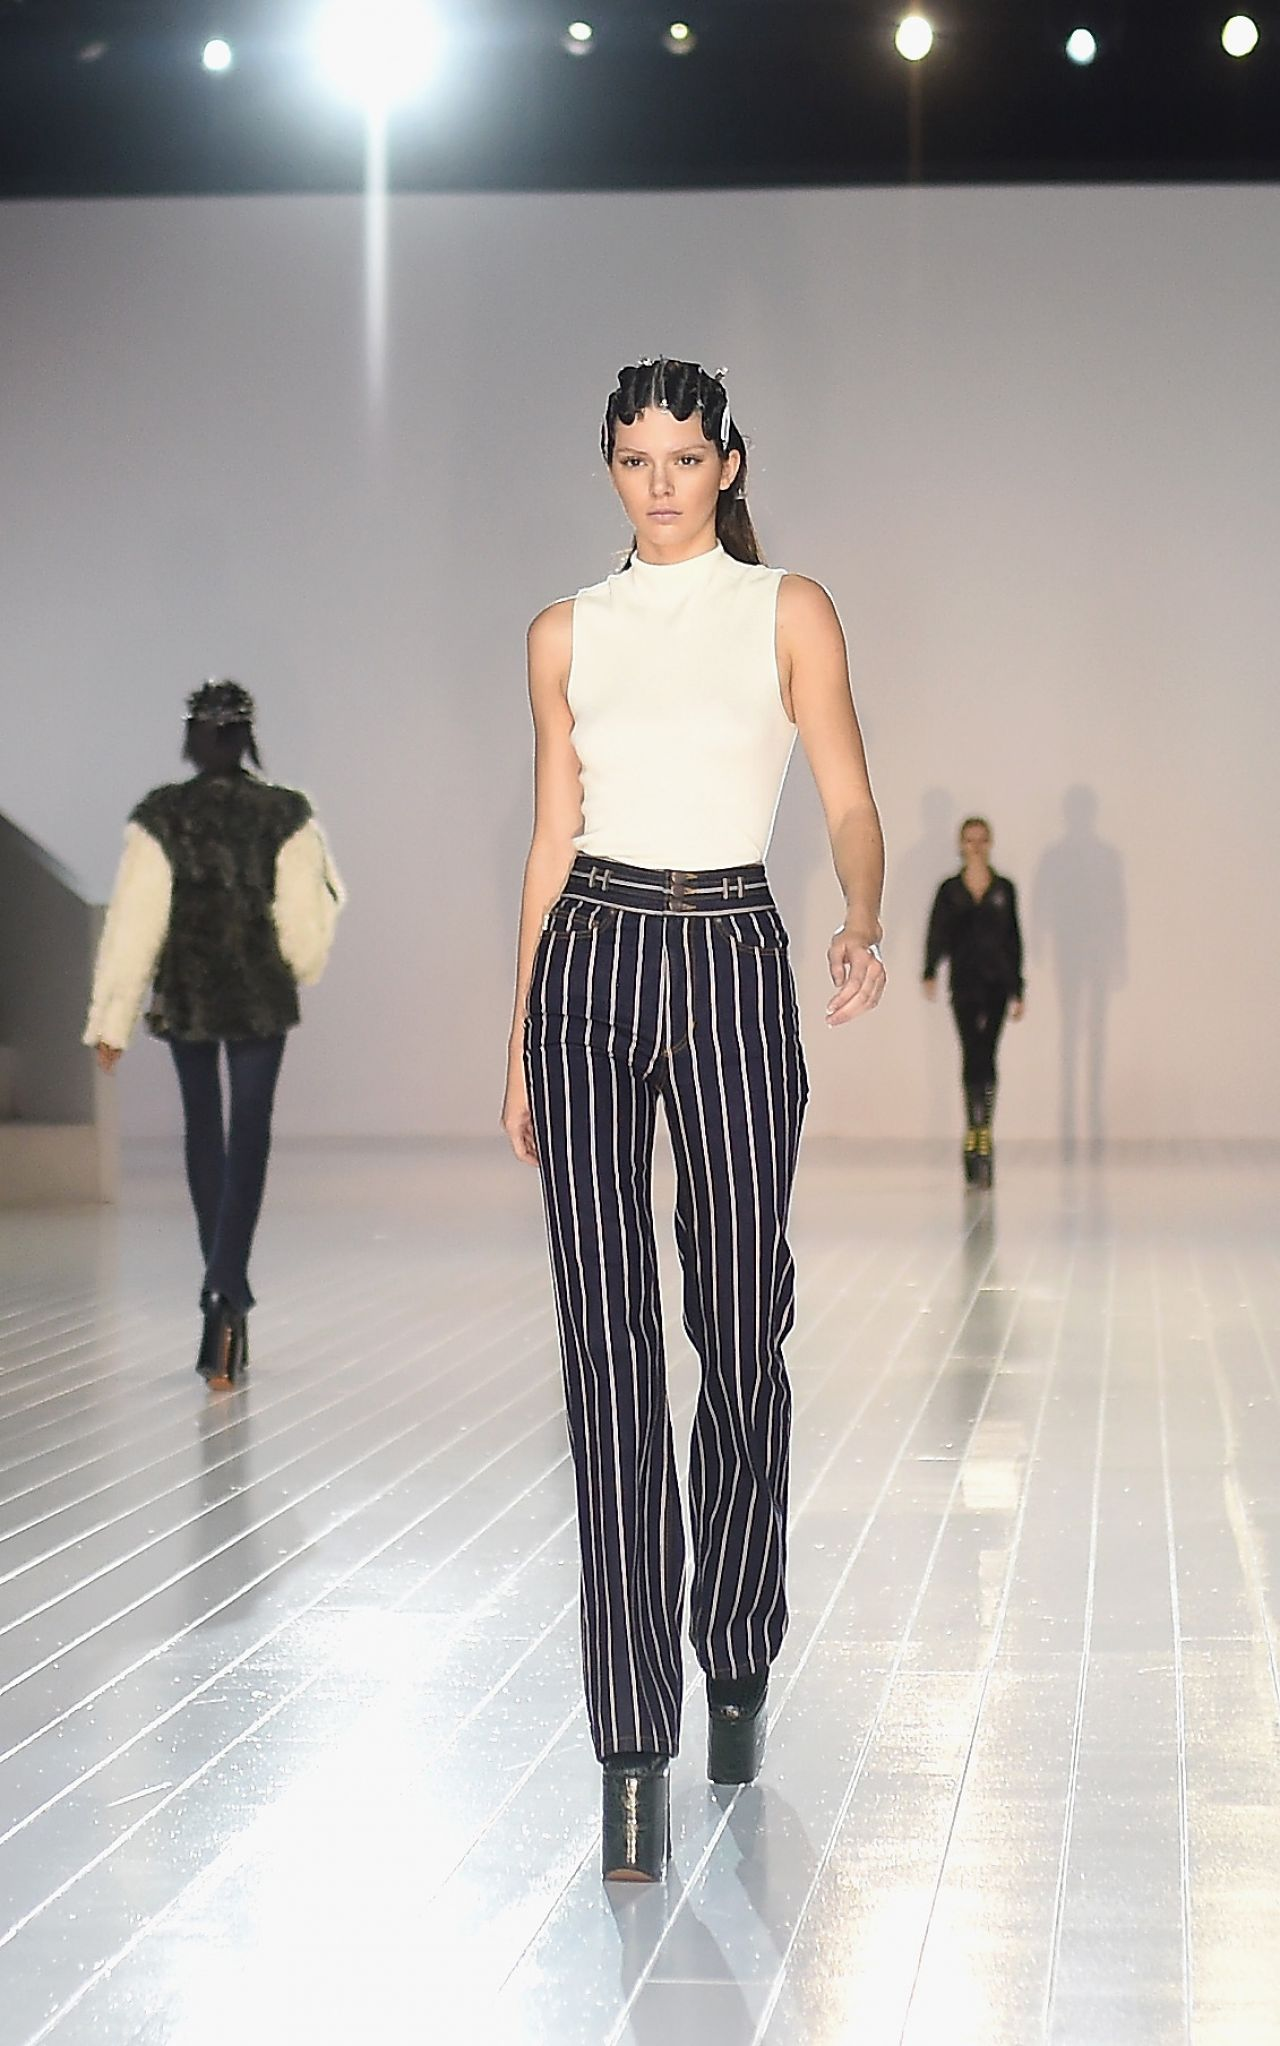 kendall jenner marc jacobs show new york fashion week 2 18 2016